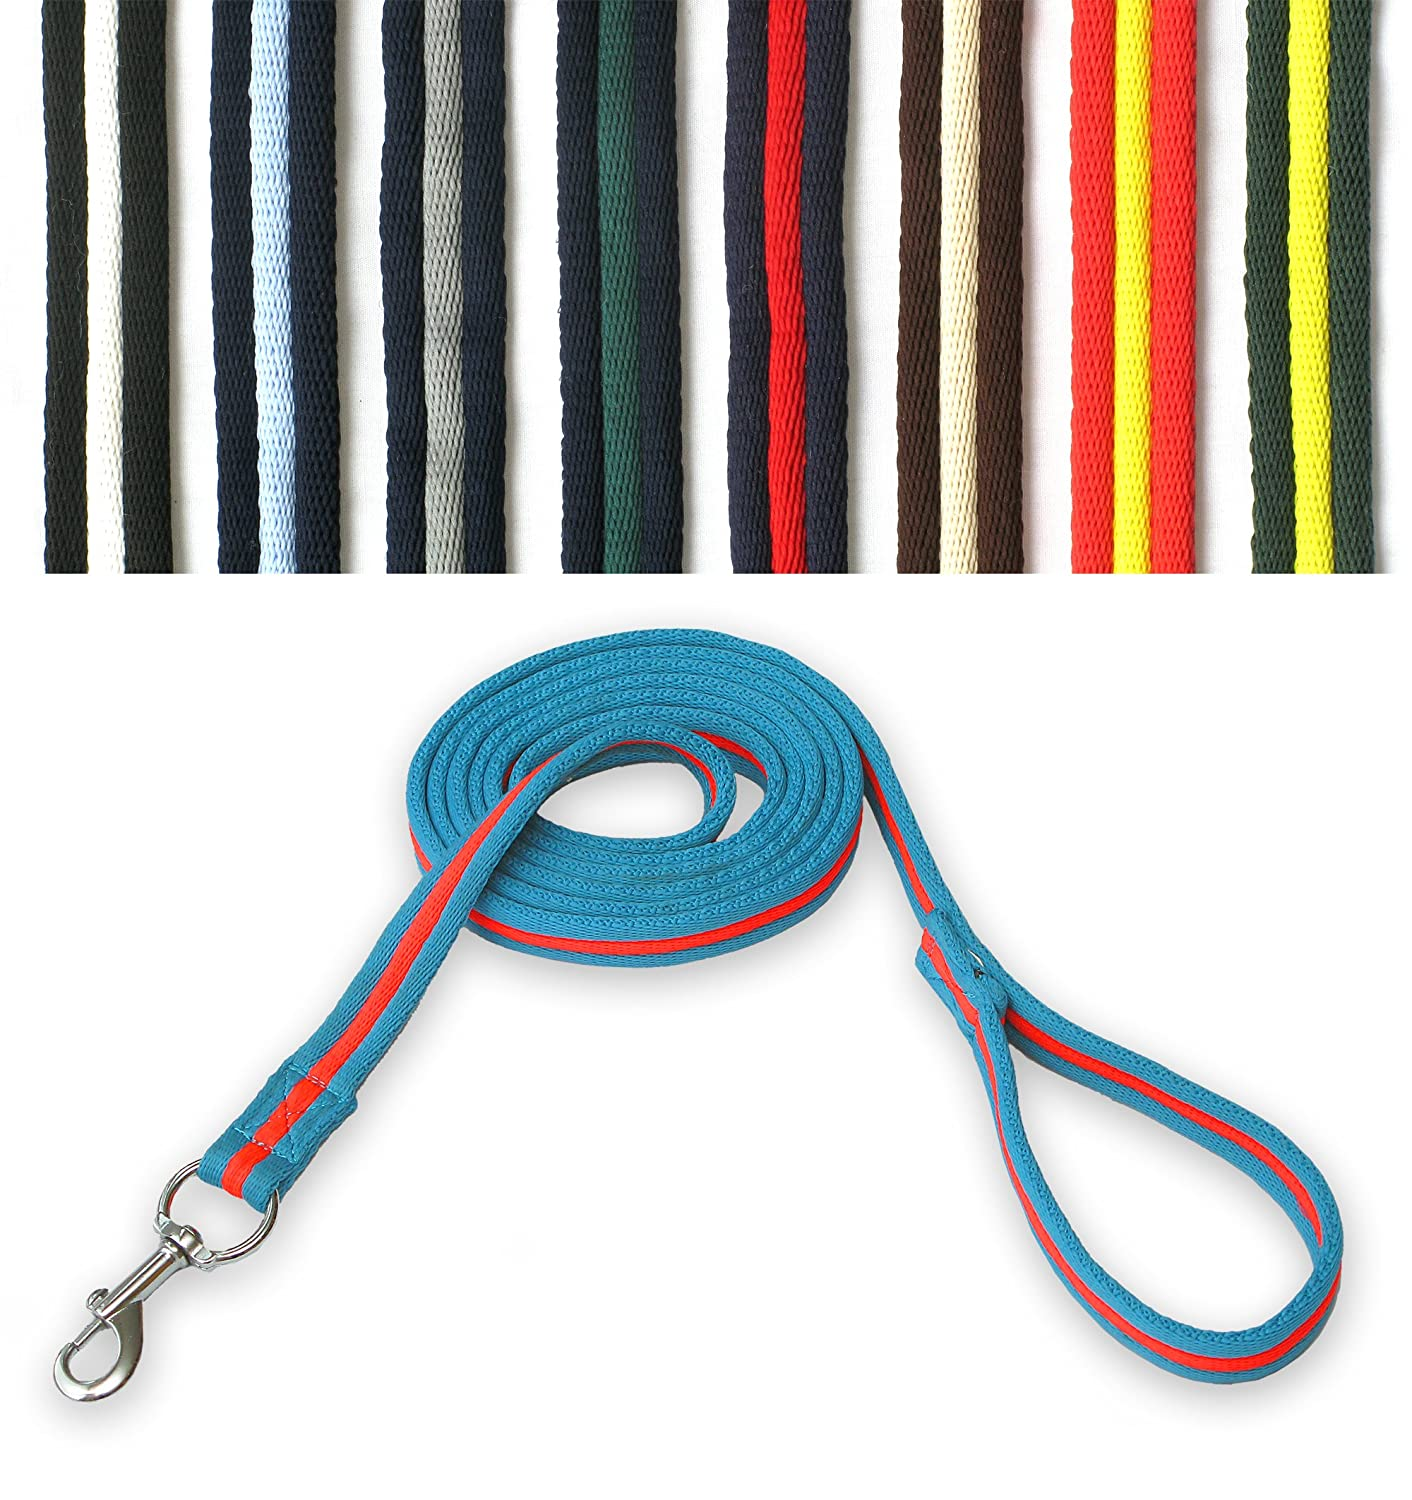 GEE TAC horse lead rope HEAD COLLAR DOG LEAD 2.4 MT LUNGE LINE extra long, please email us your colour choice …